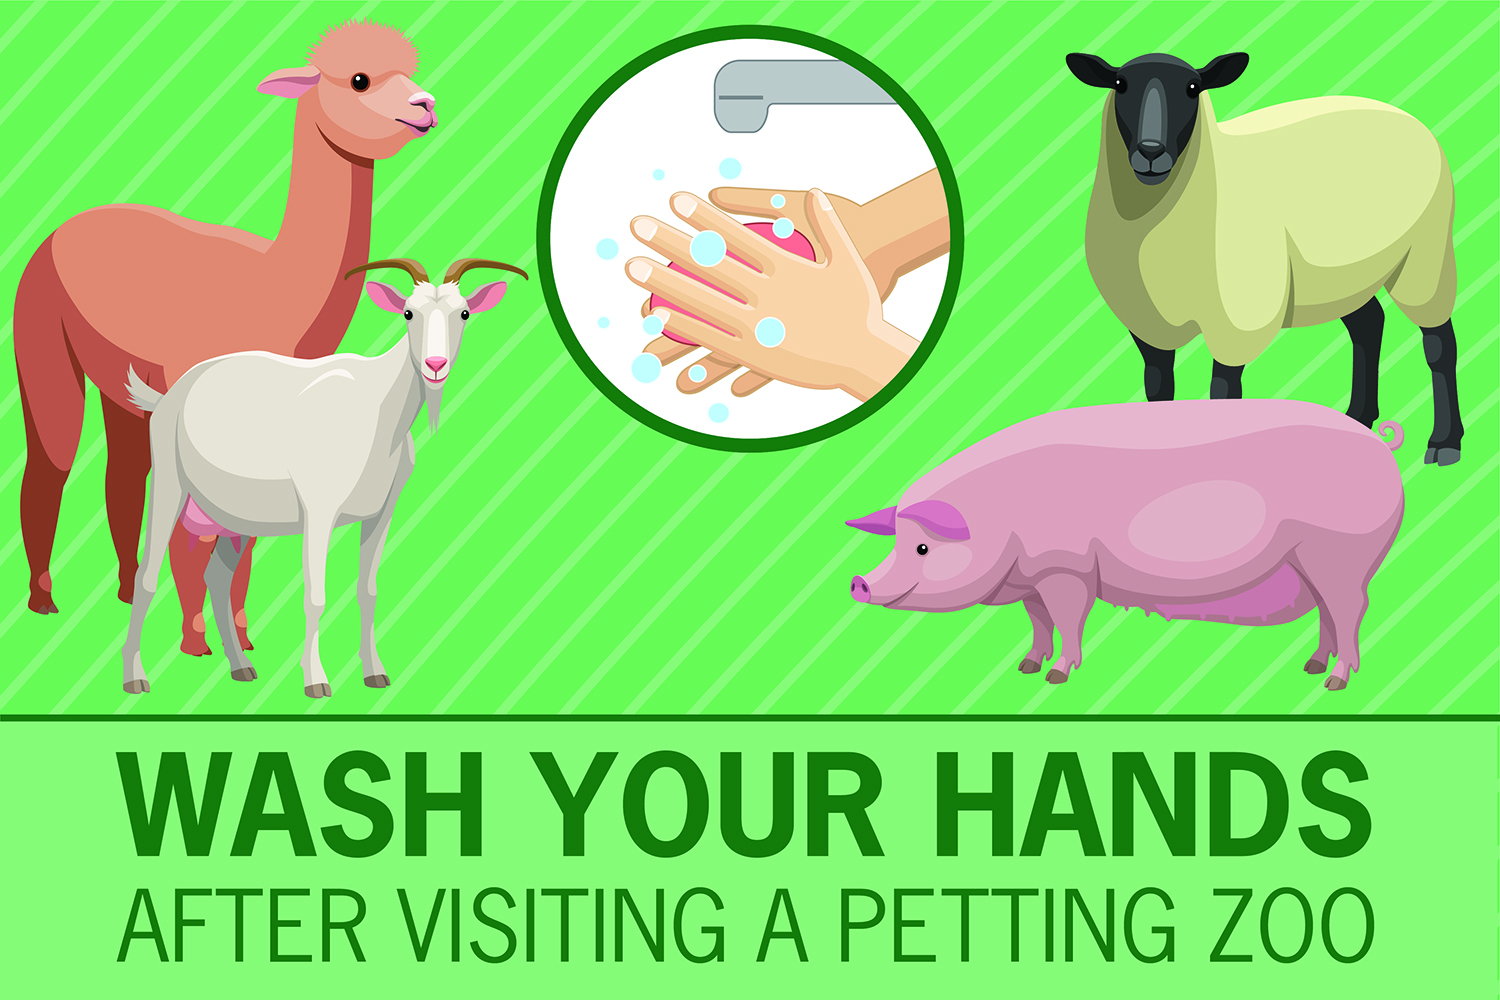 Always Wash Your Hands After Visiting a Petting Zoo Sticker